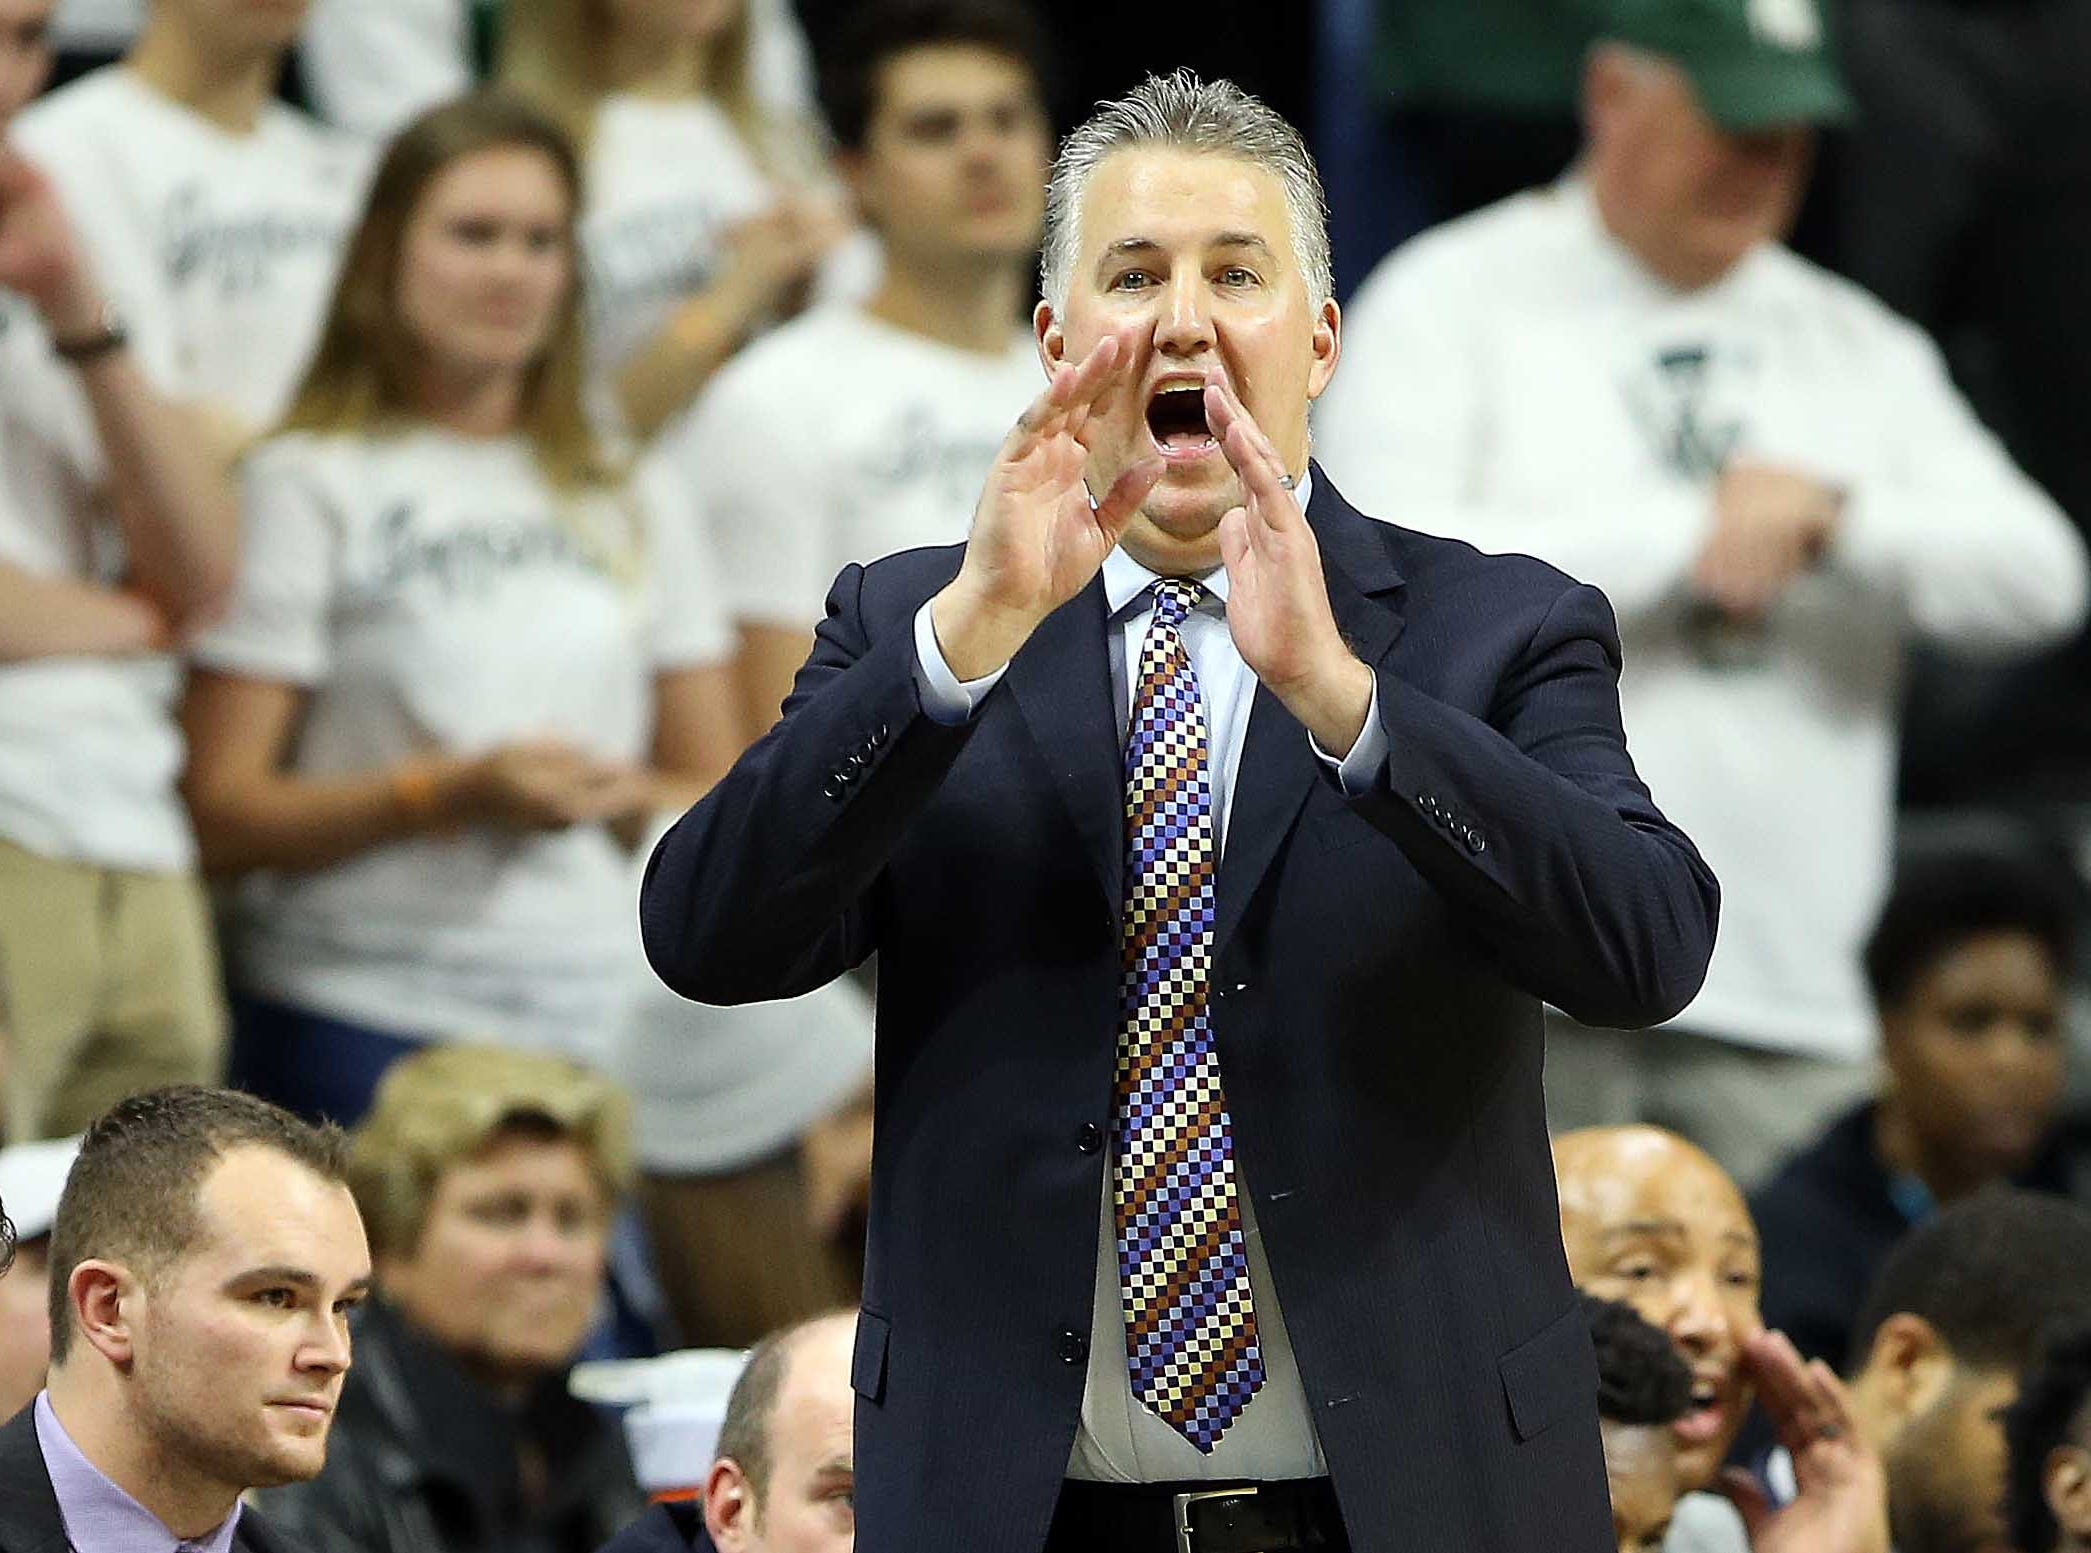 Jan 8, 2019; East Lansing, MI, USA; Purdue Boilermakers head coach Matt Painter reacts during the second half of a game against the Michigan State Spartans at the Breslin Center. Mandatory Credit: Mike Carter-USA TODAY Sports